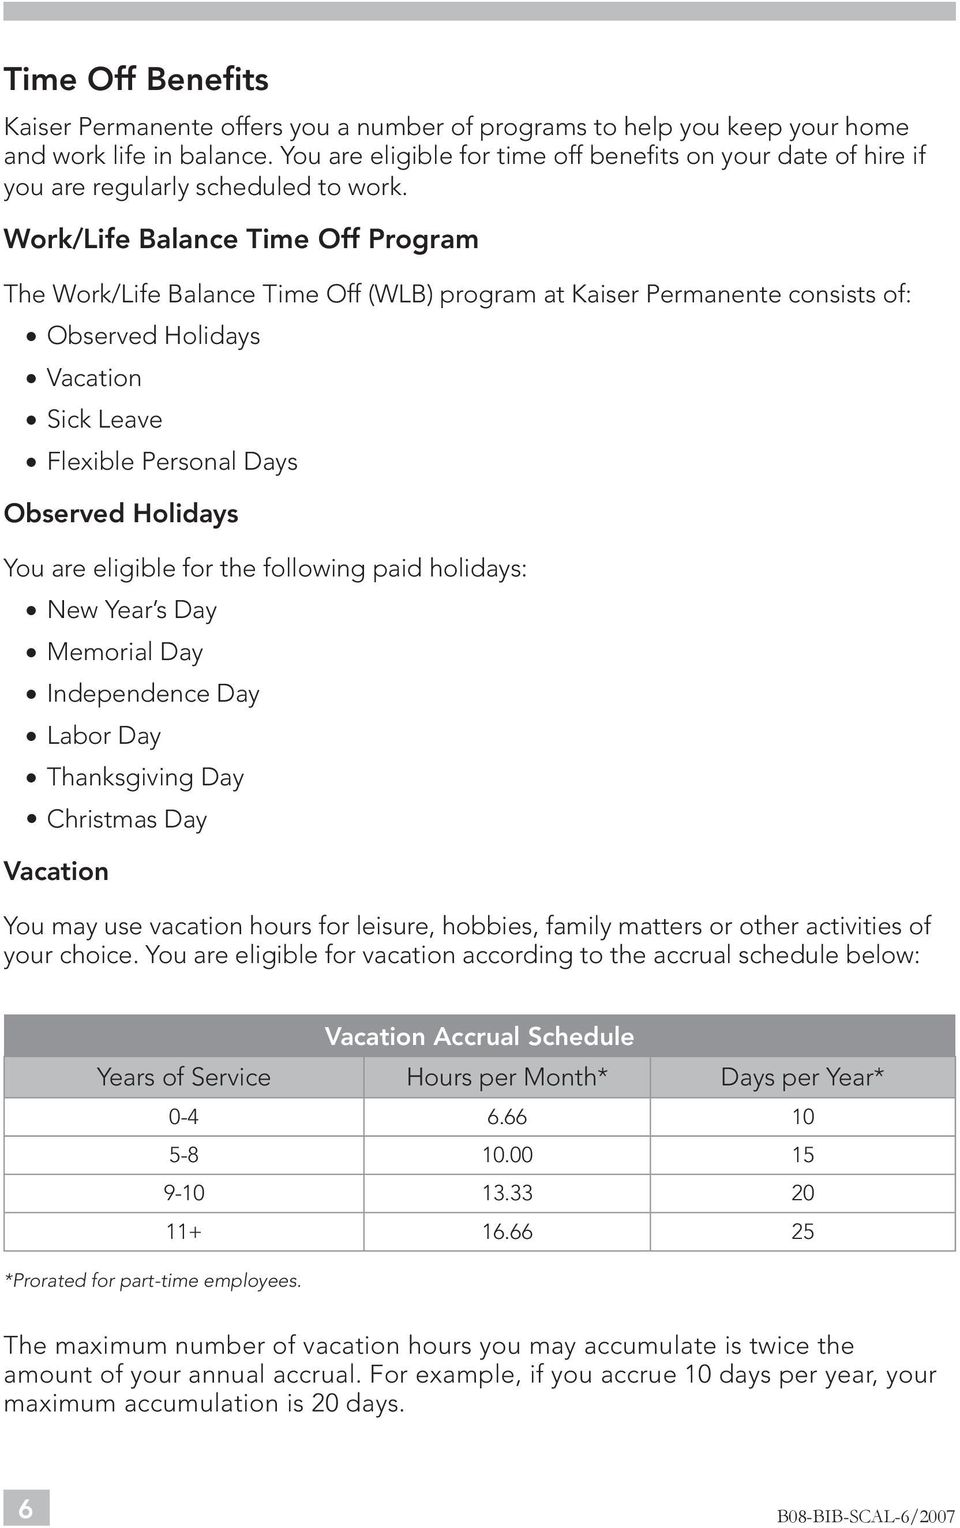 Work/Life Balance Time Off Program The Work/Life Balance Time Off (WLB) program at Kaiser Permanente consists of: Observed Holidays Vacation Sick Leave Flexible Personal Days Observed Holidays You